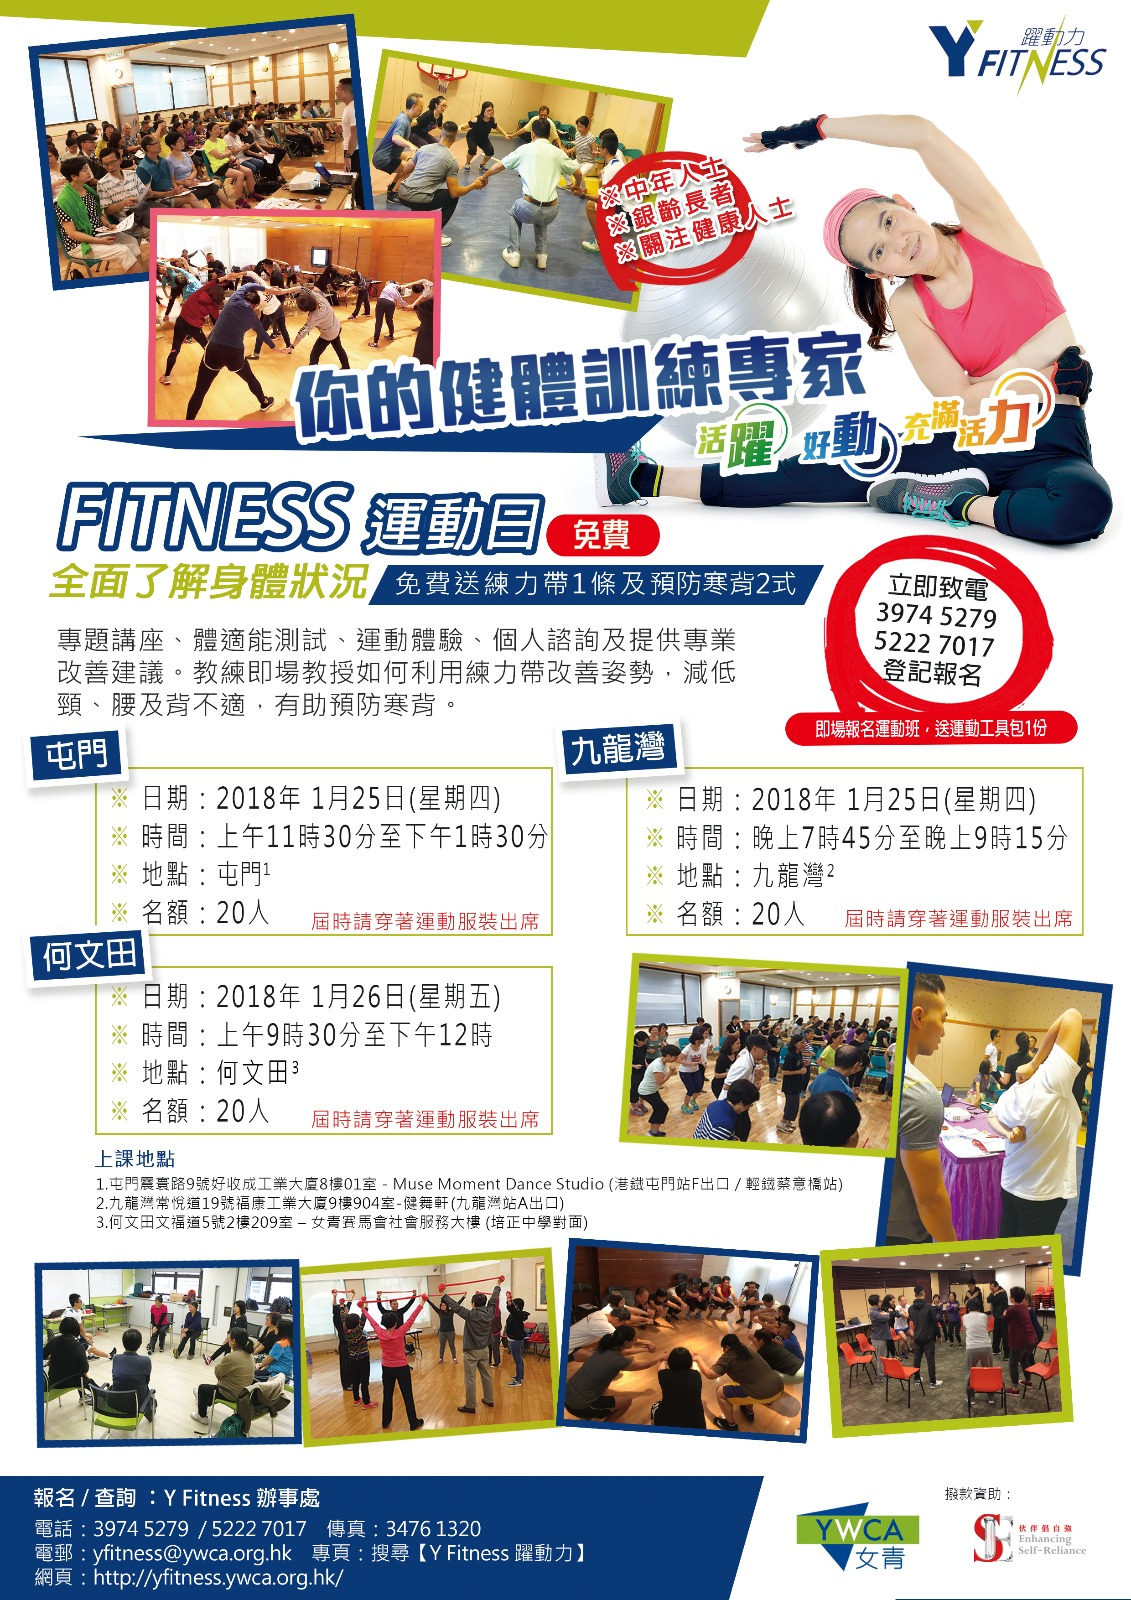 Y Fitness - Fitness Day